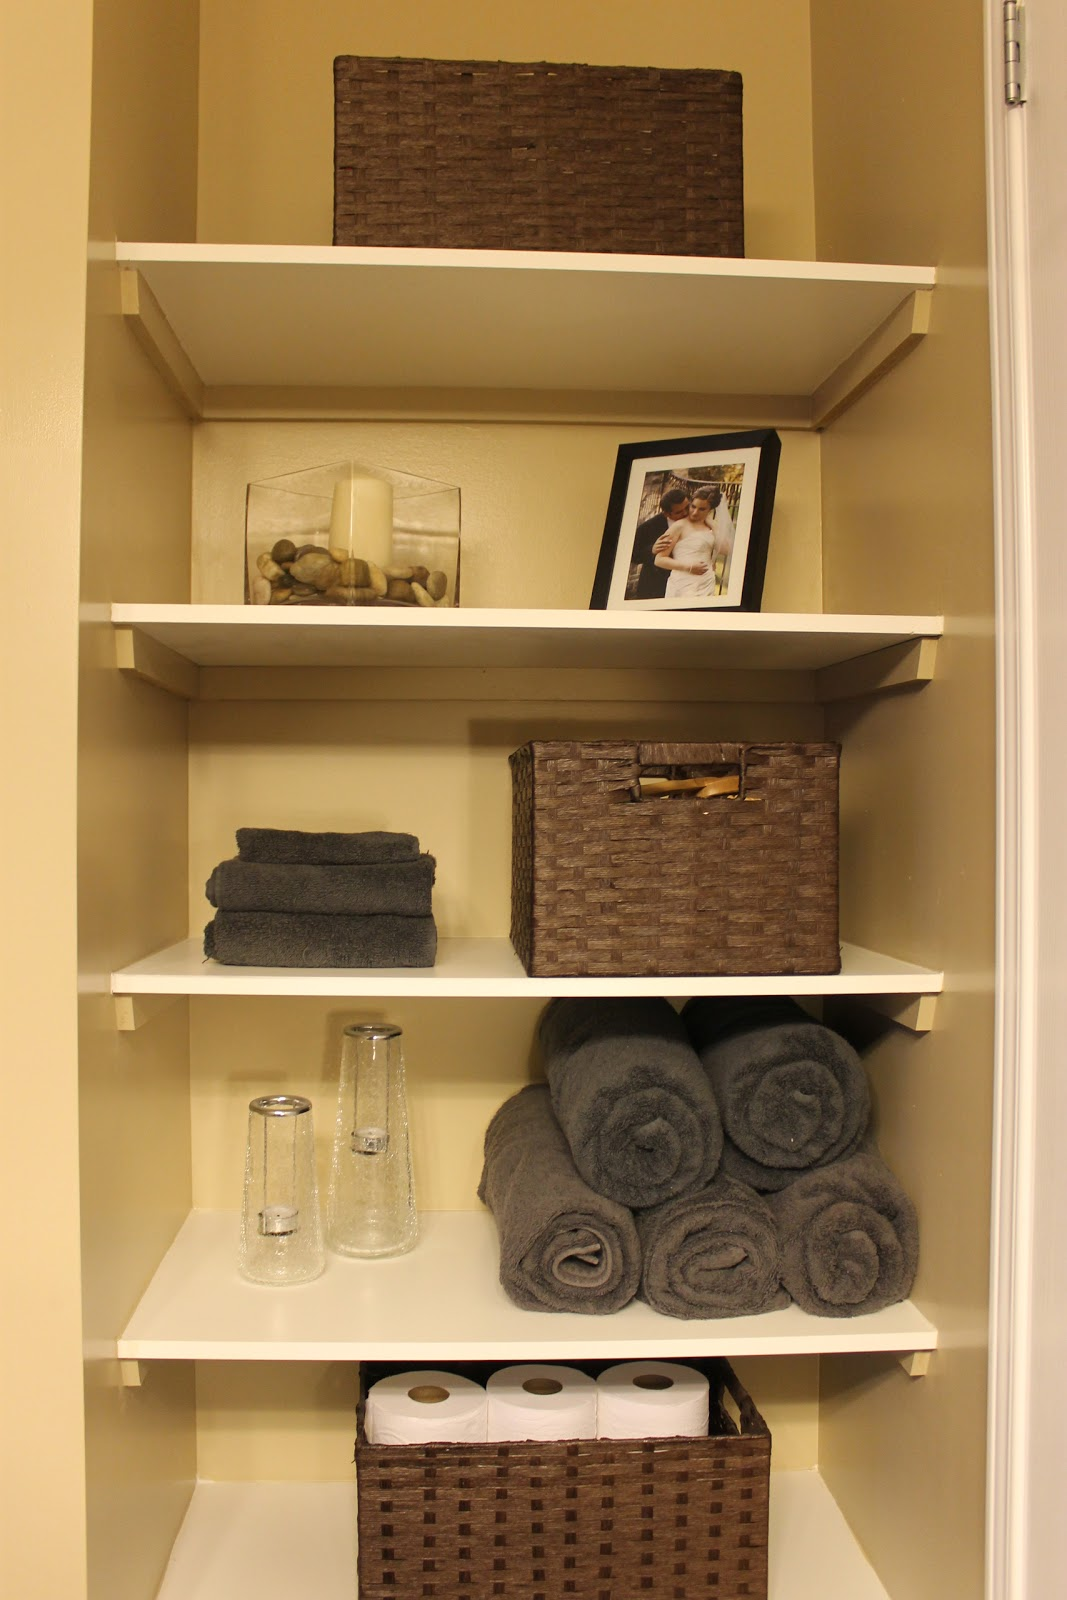 Km decor diy organizing open shelving in a bathroom Open shelving